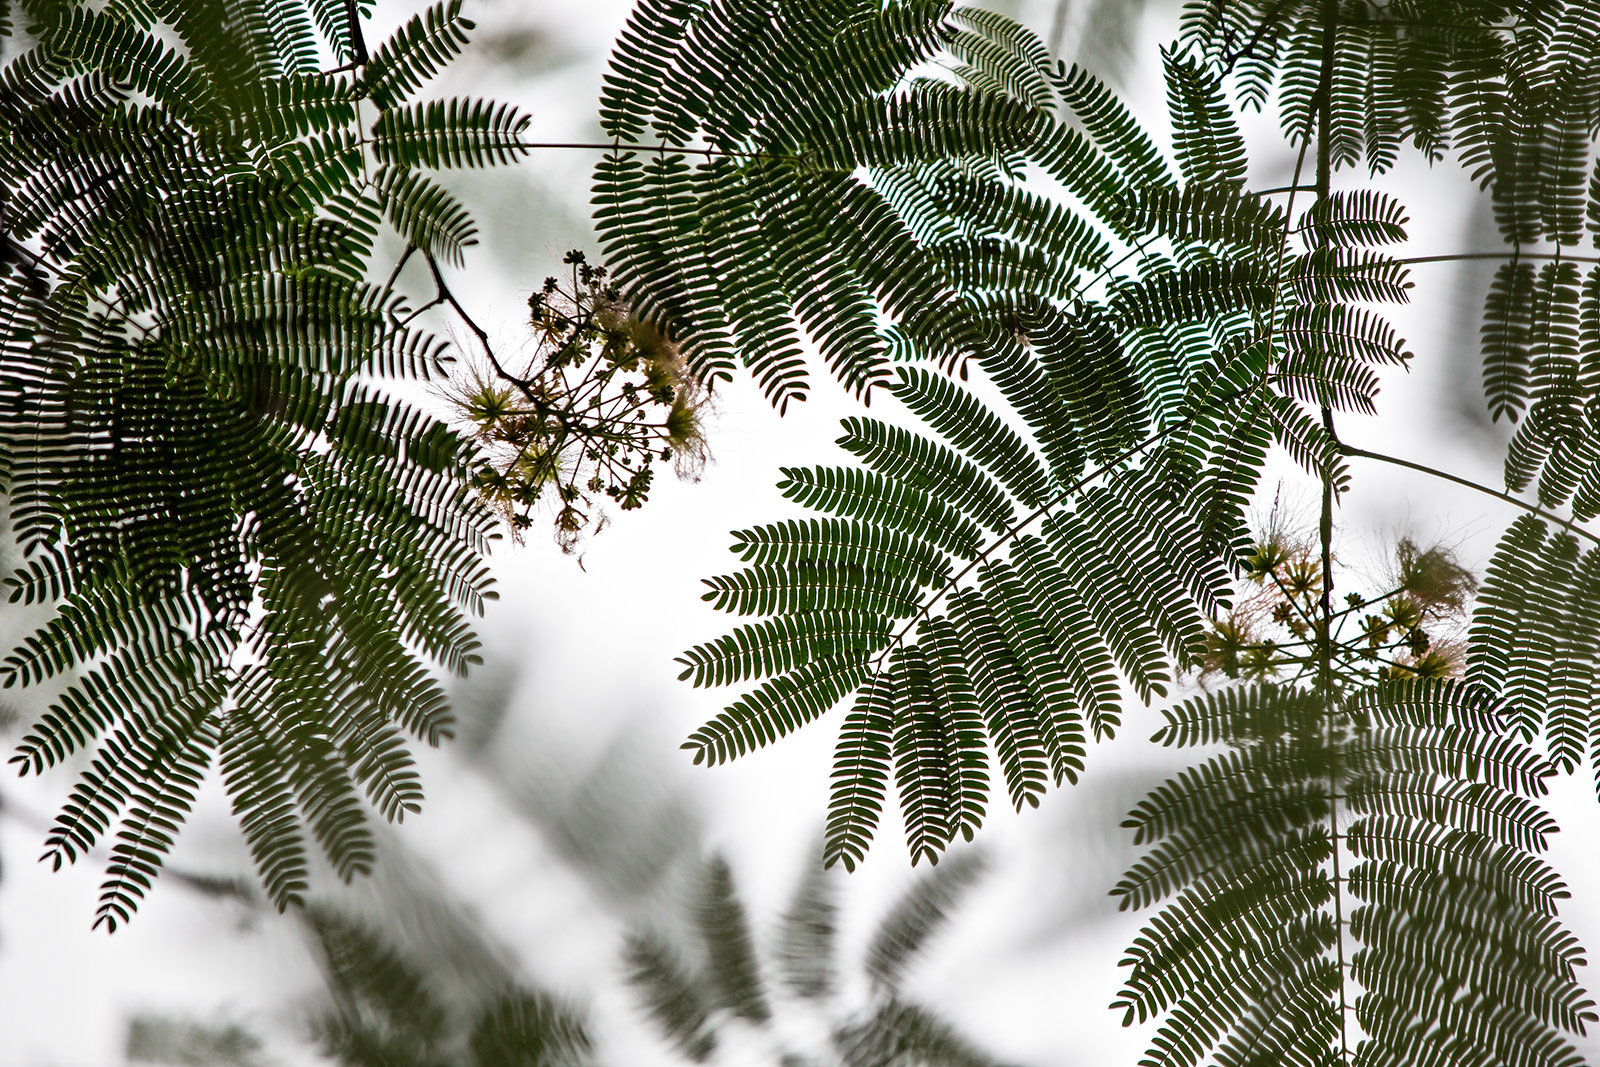 Looking up into the foliage of Albizia julibrissin